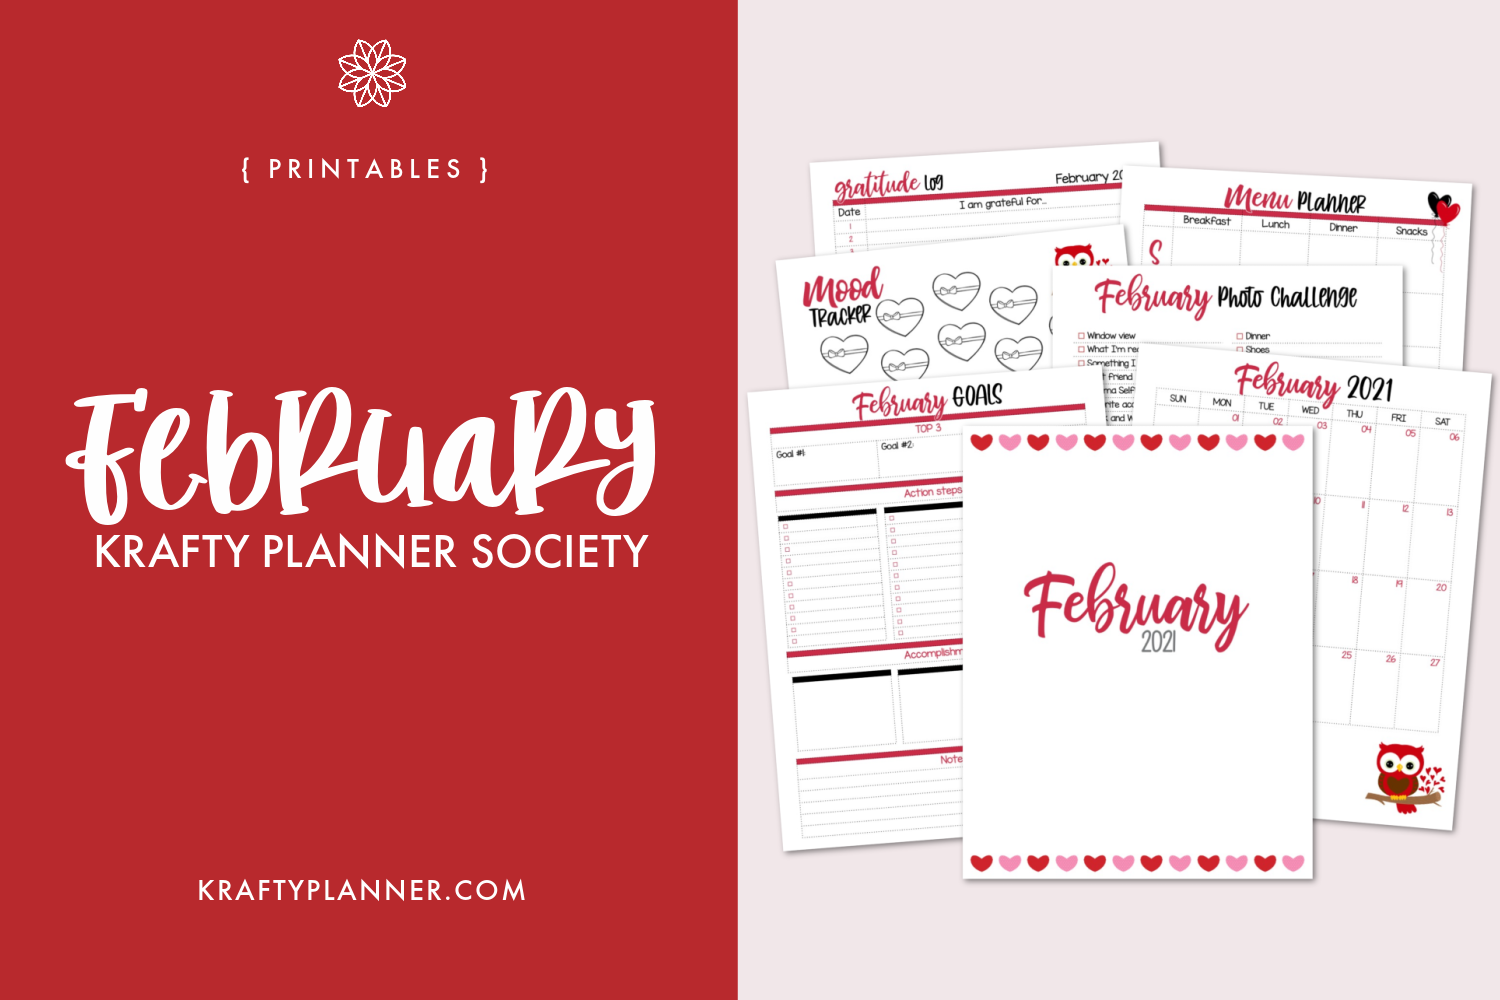 February 2021 Krafty Planner Society Main Image